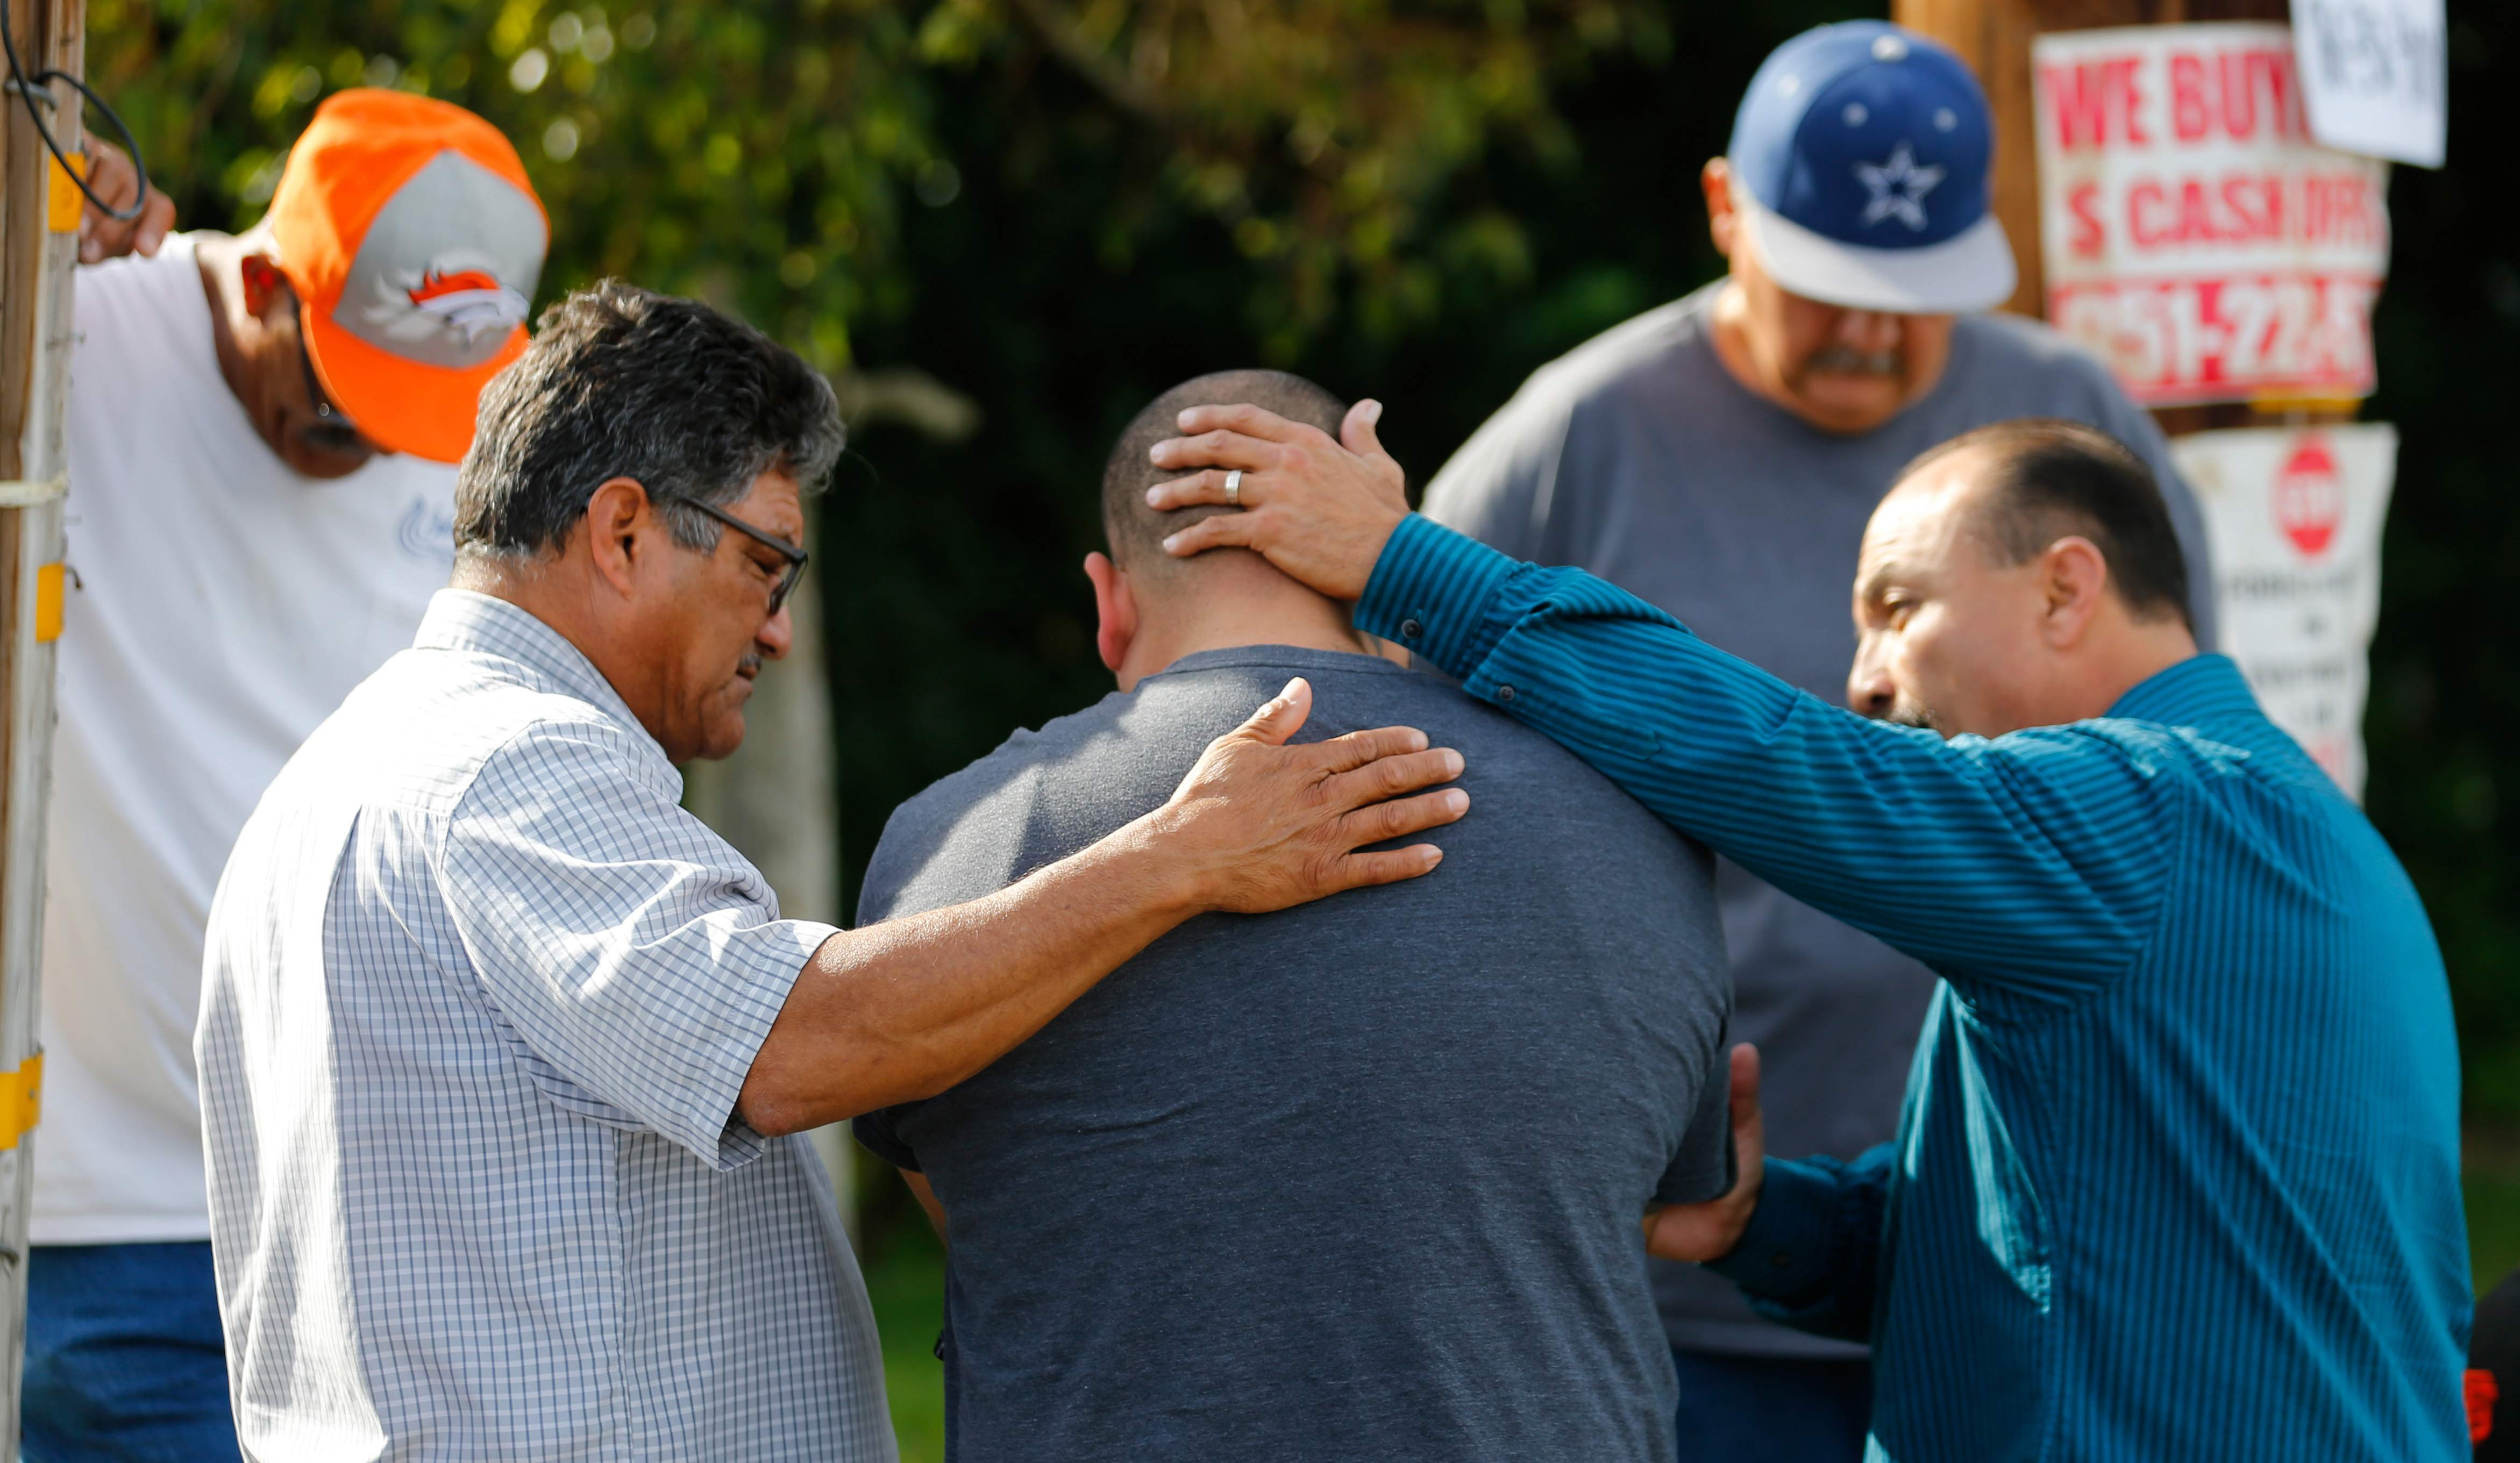 Neighbours comfort Jose Gonzales (centre), who was prevented from returning to his wife and his home at the scene of the investigation around the area of the SUV vehicle where two suspects were shot by police following a mass shooting in San Bernardino, California December 3, 2015.